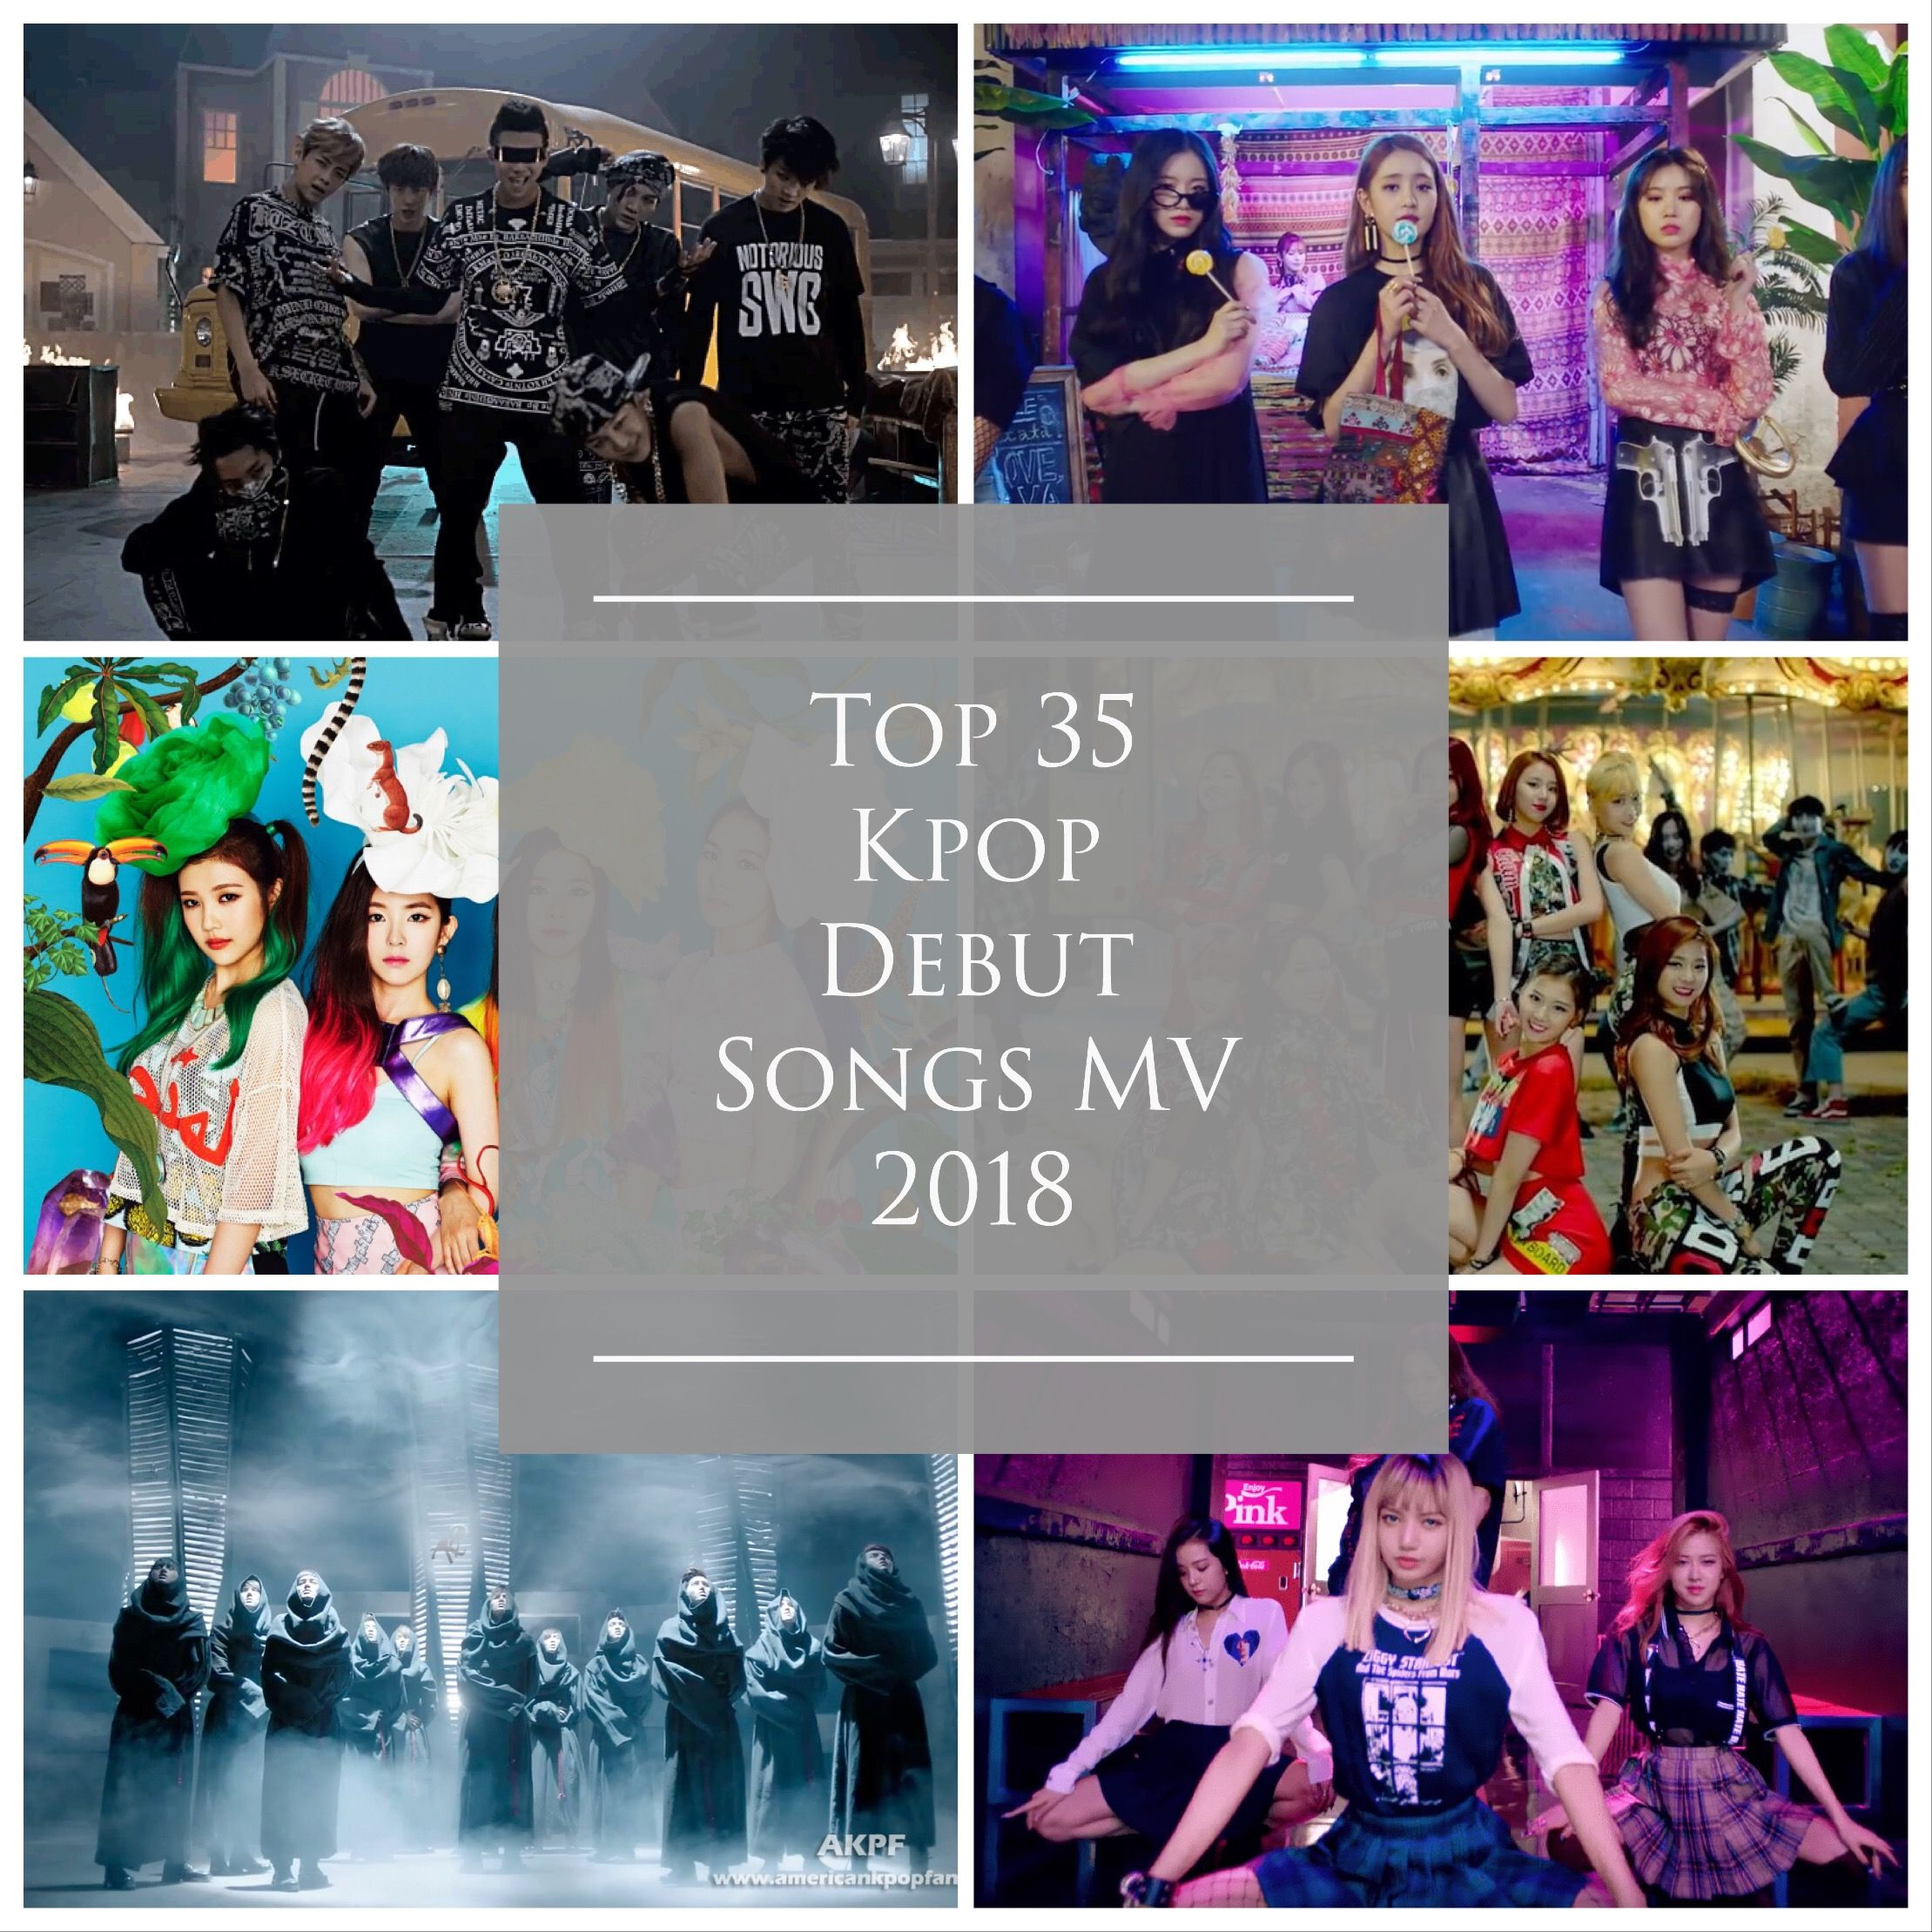 Top 35 Kpop Debut Songs Mv 2018 Songs Kpop Debut